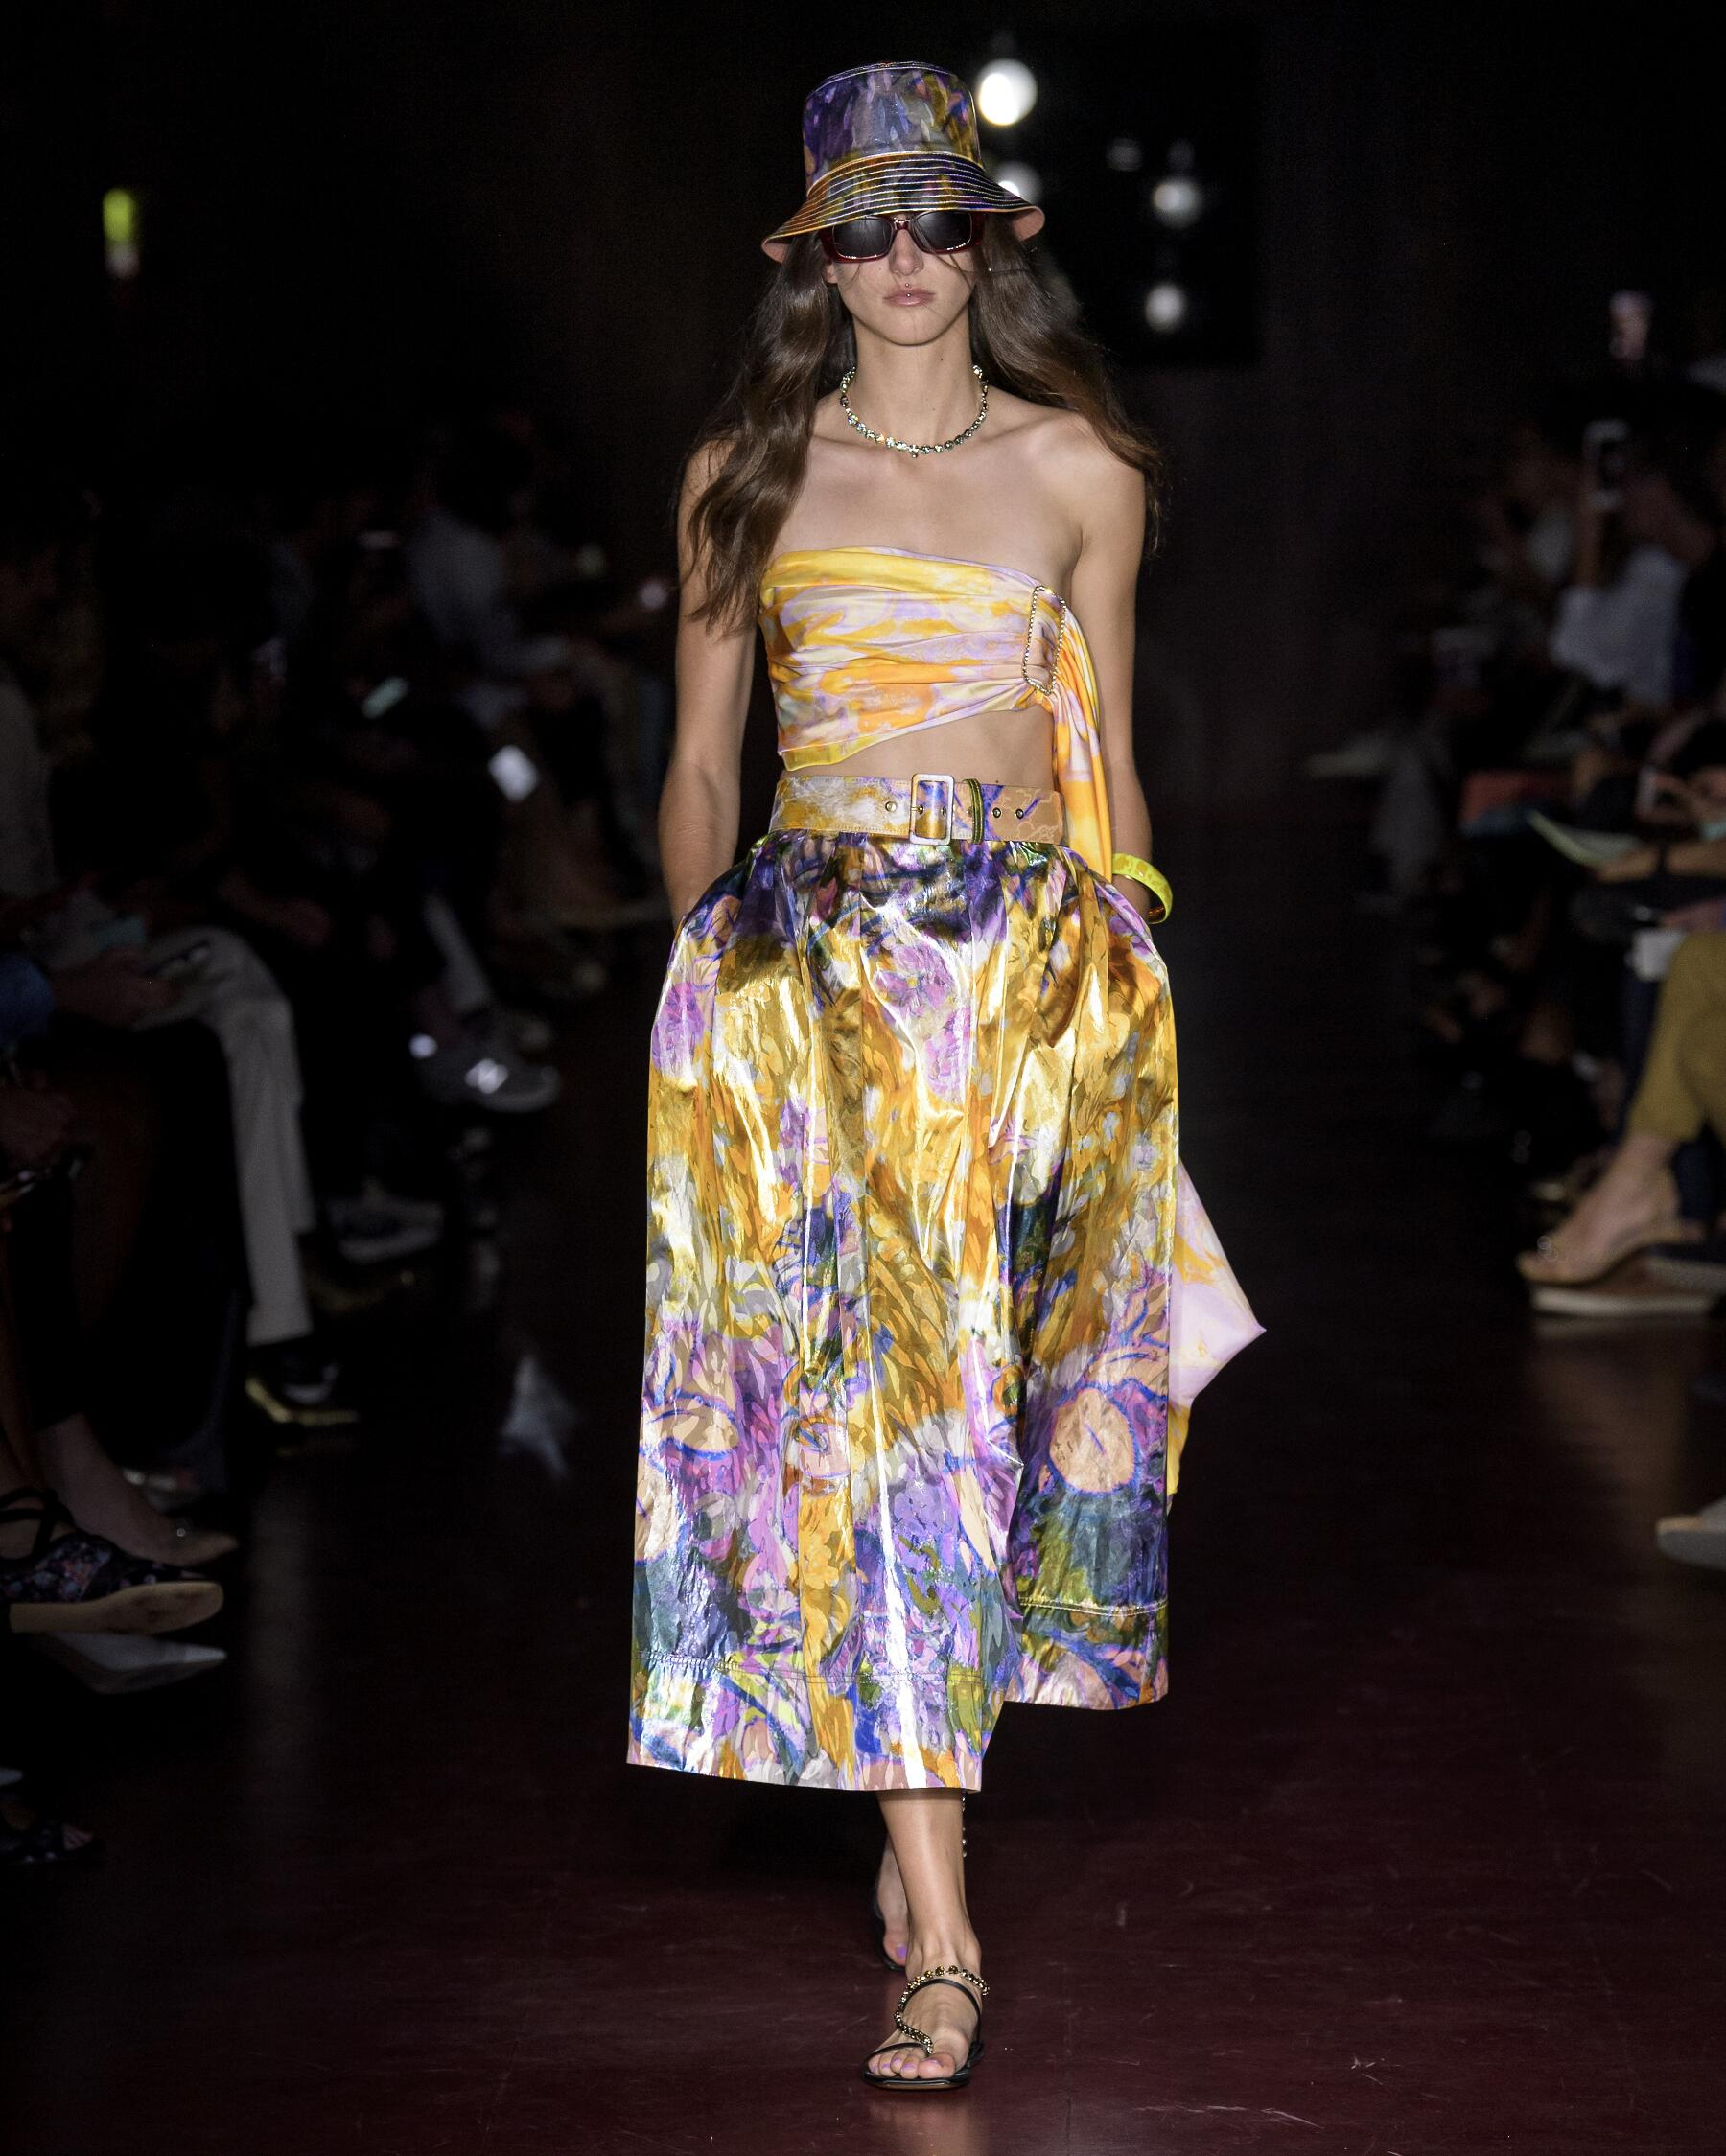 2020 Peter Pilotto Summer Catwalk